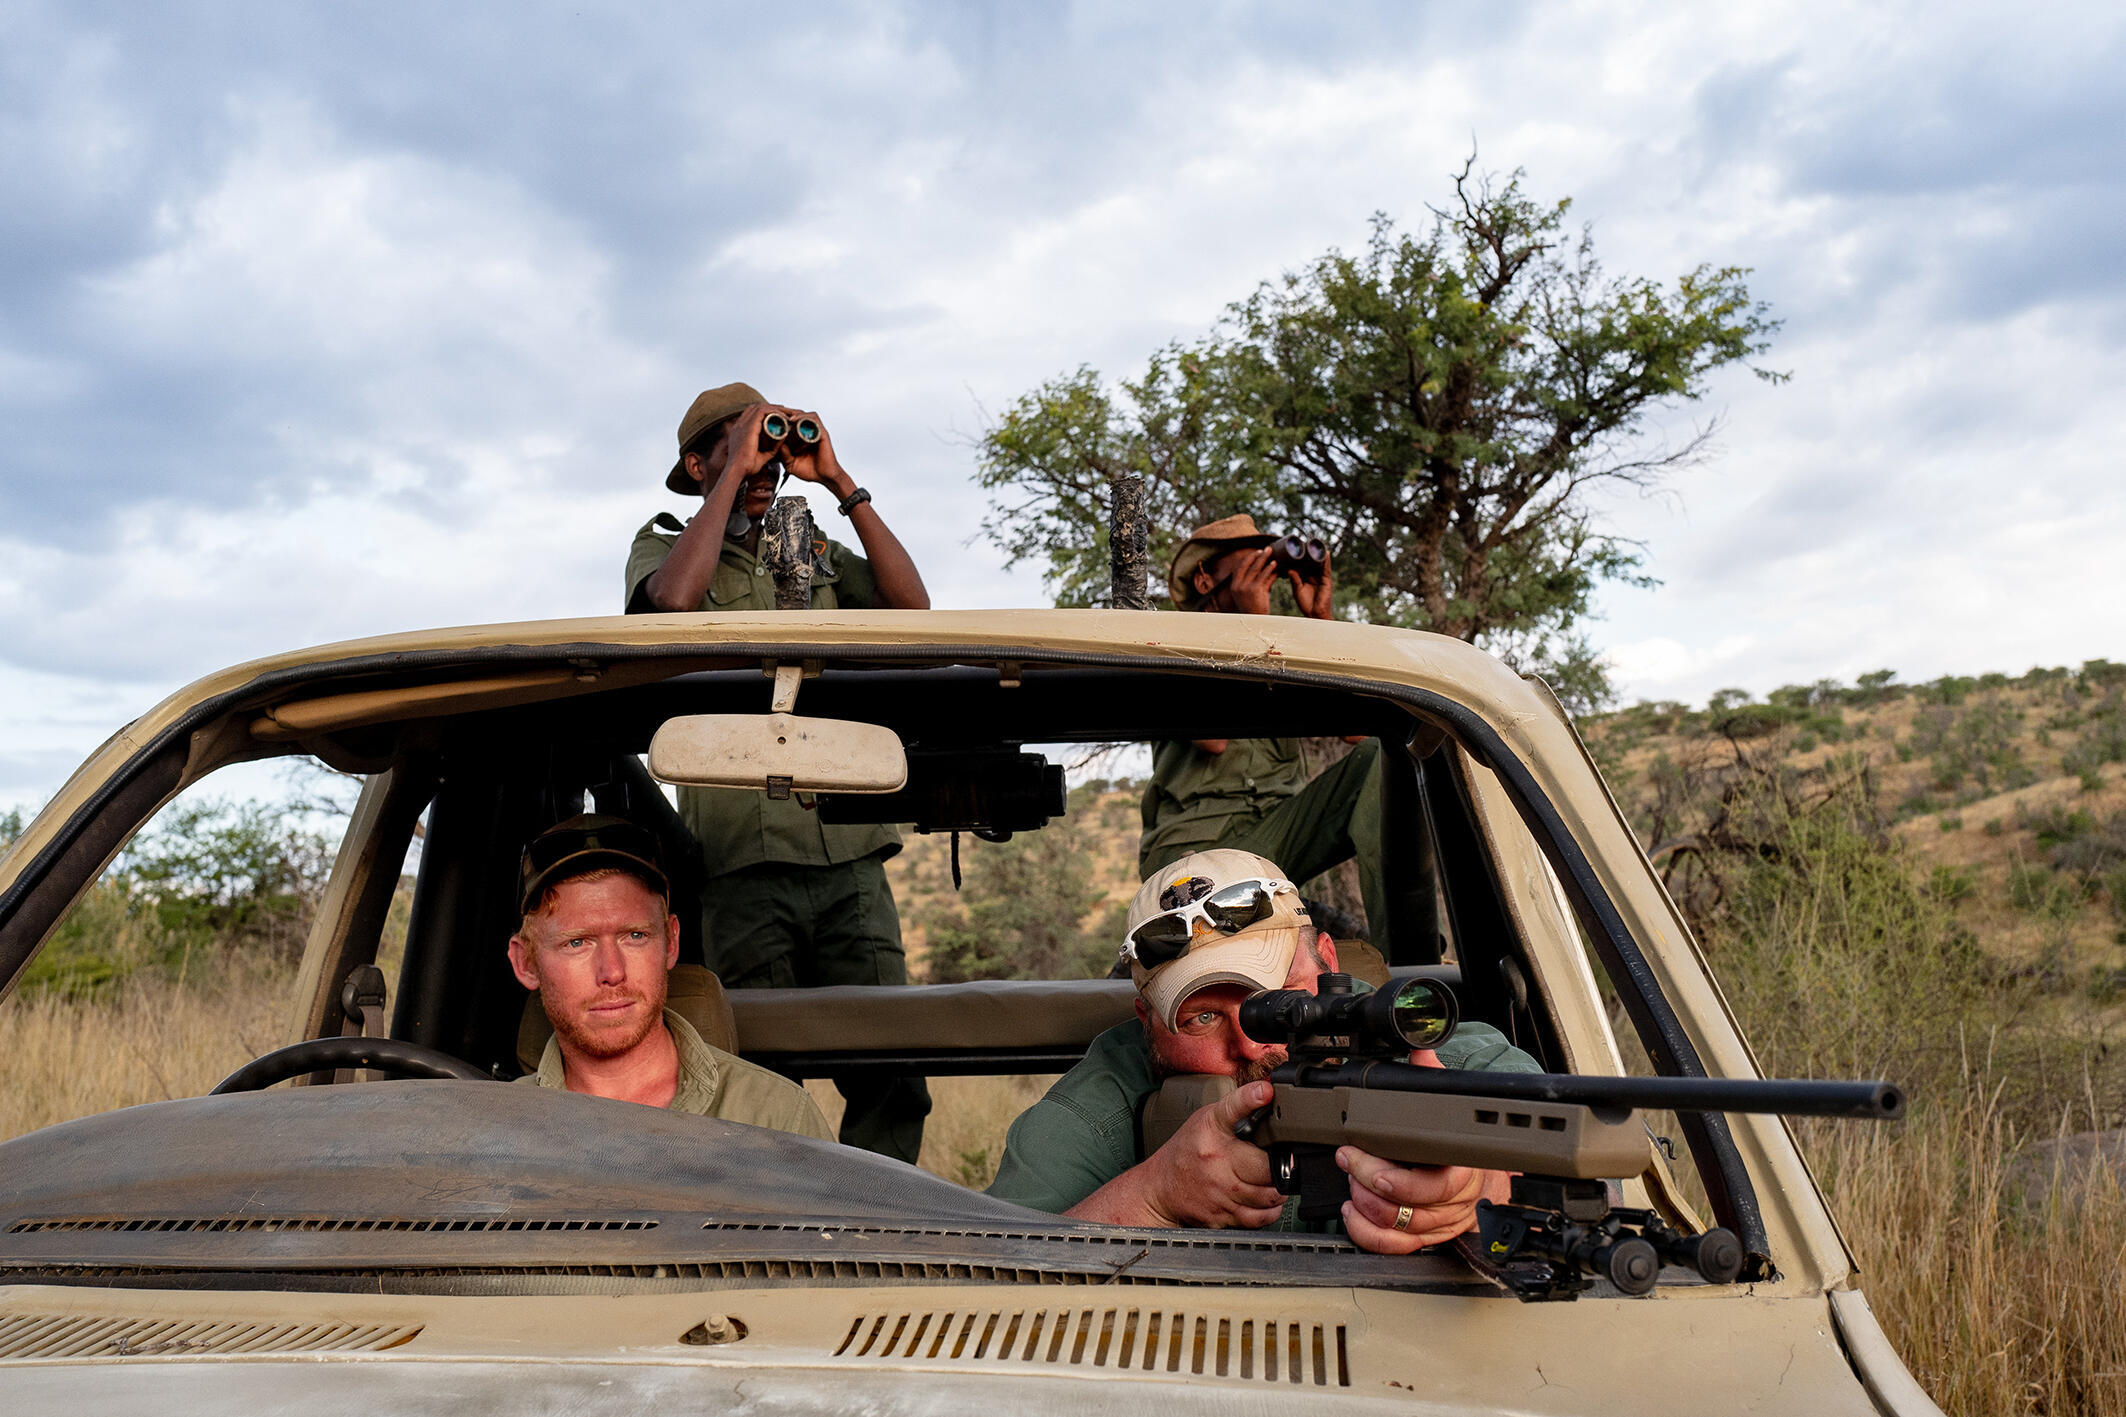 Erik Grimland in a jeep with Philip Hennings, the owner of the wild game reserve, and two guides, hunting hartebeest antelope. Khomas Highland, Namibia, April 21, 2021.